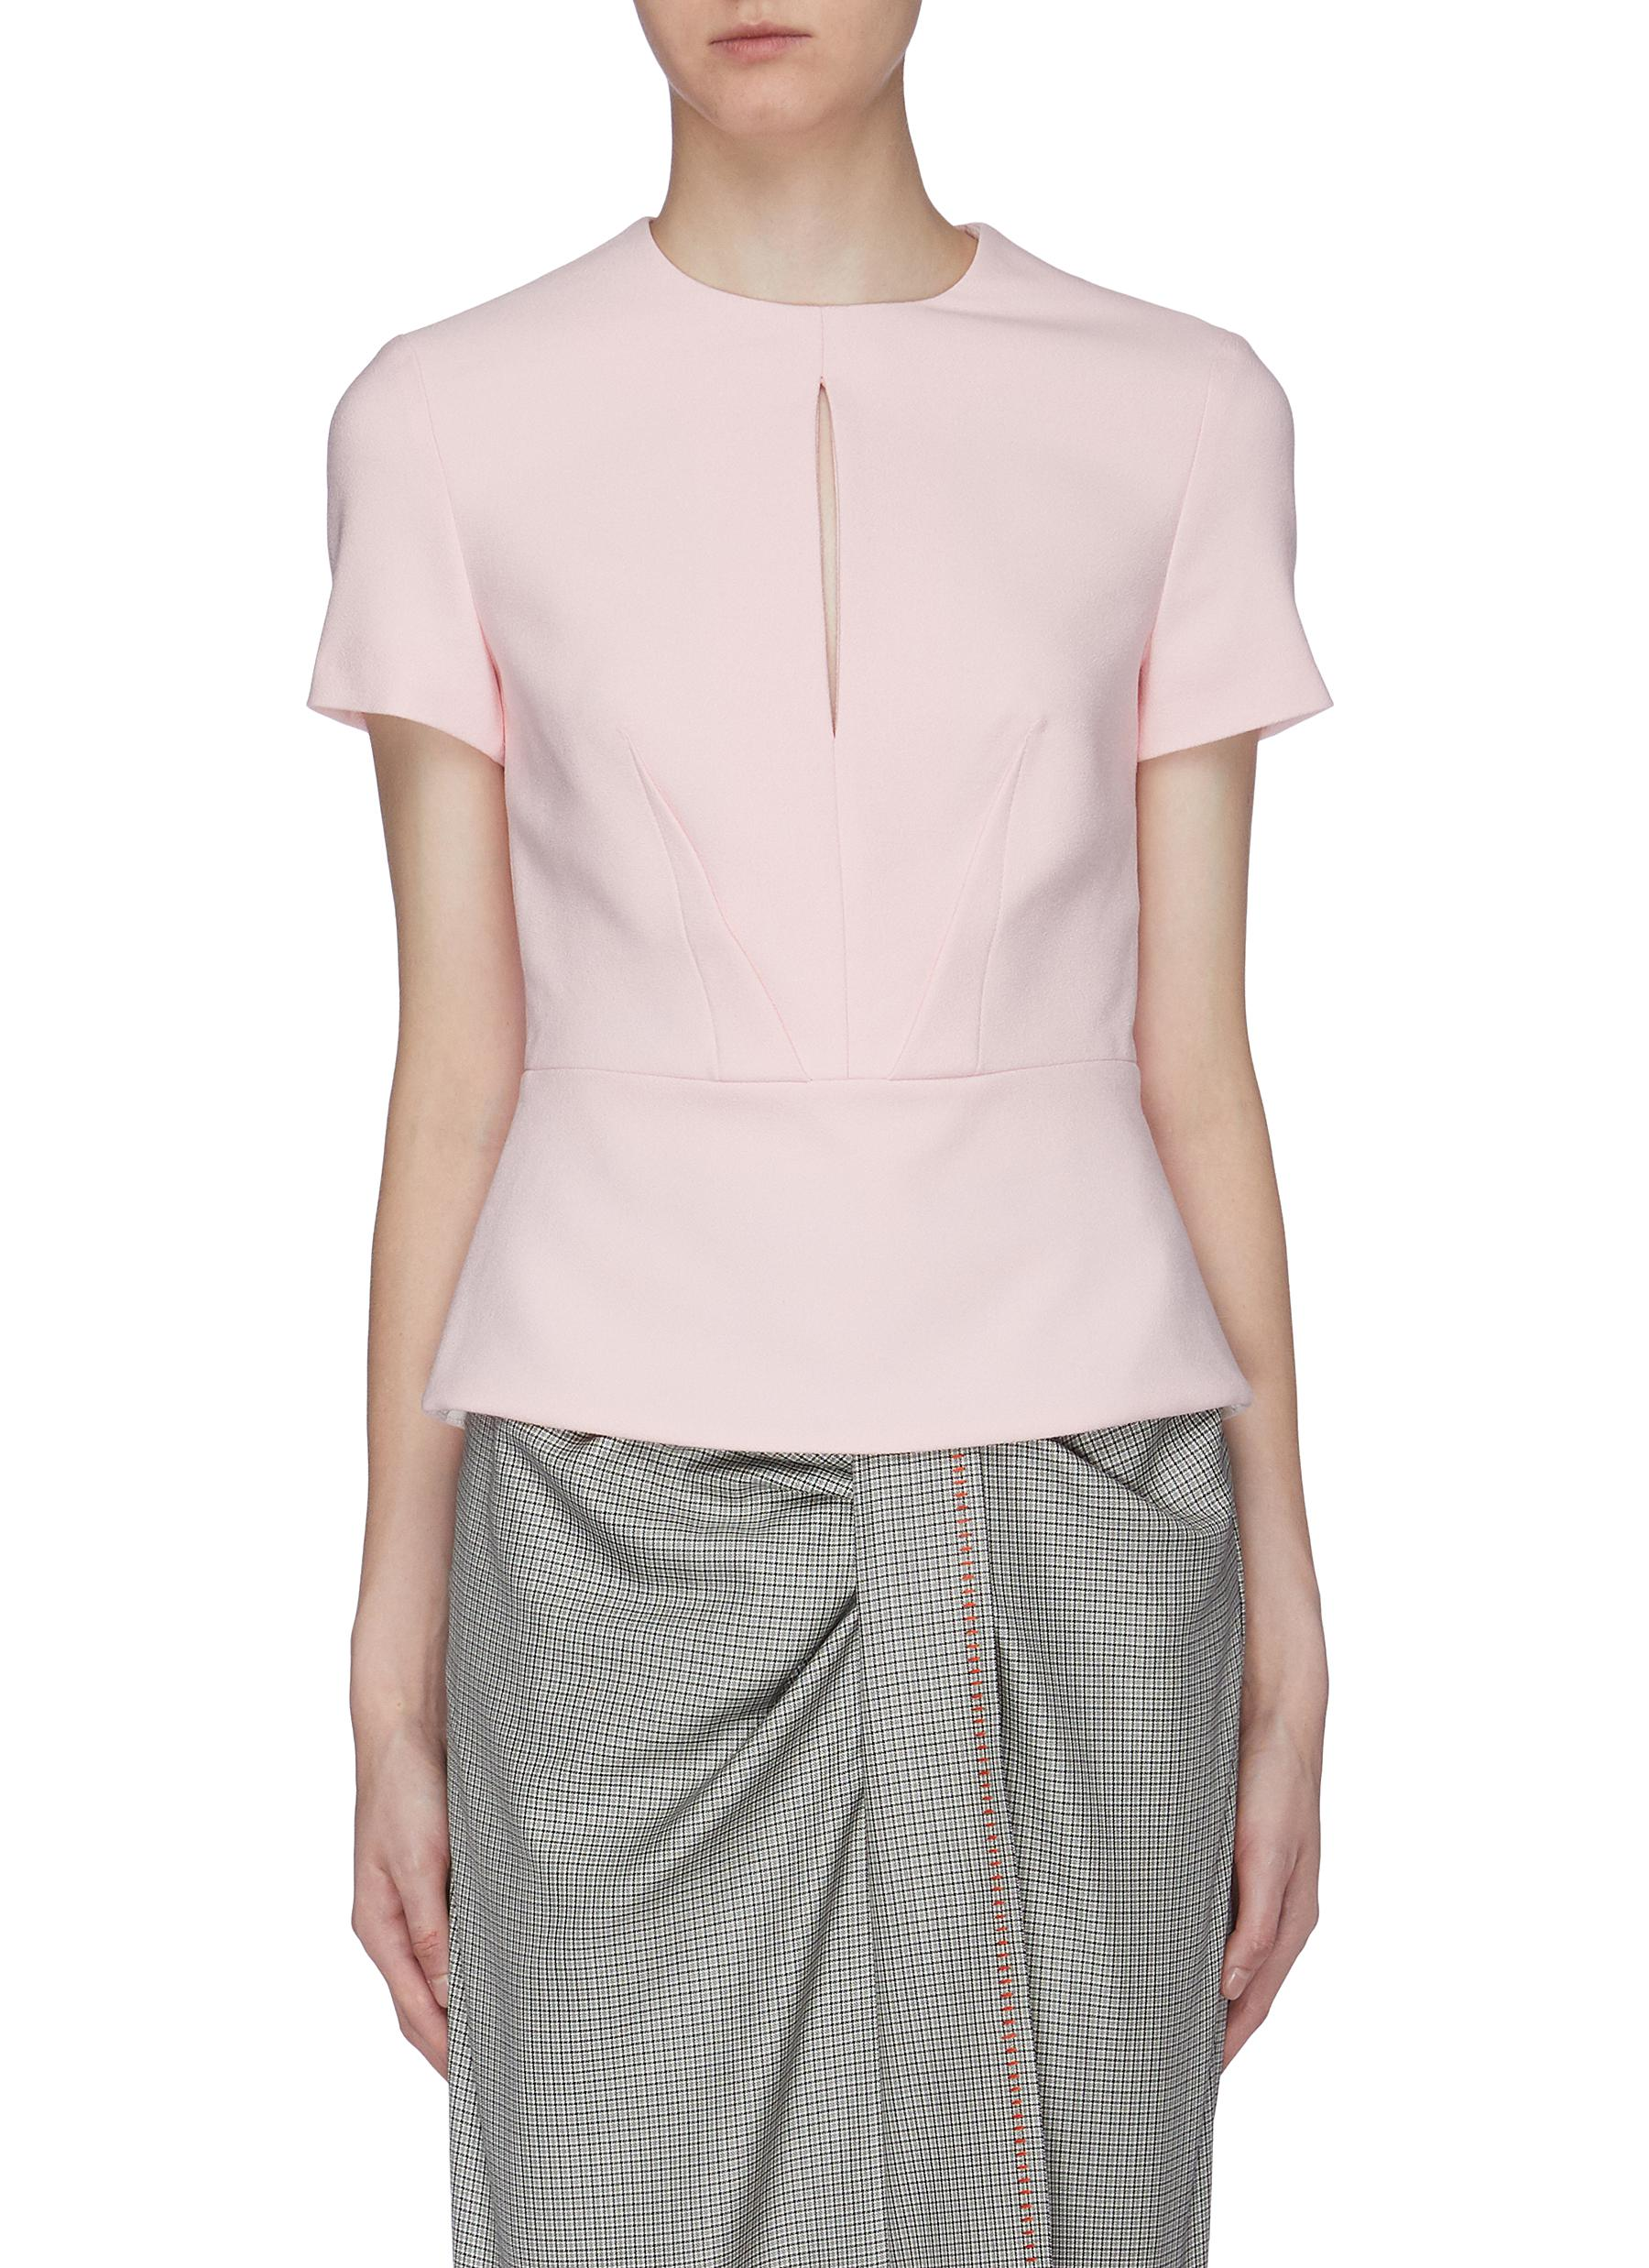 Redgate keyhole yoke crepe peplum top by Roland Mouret